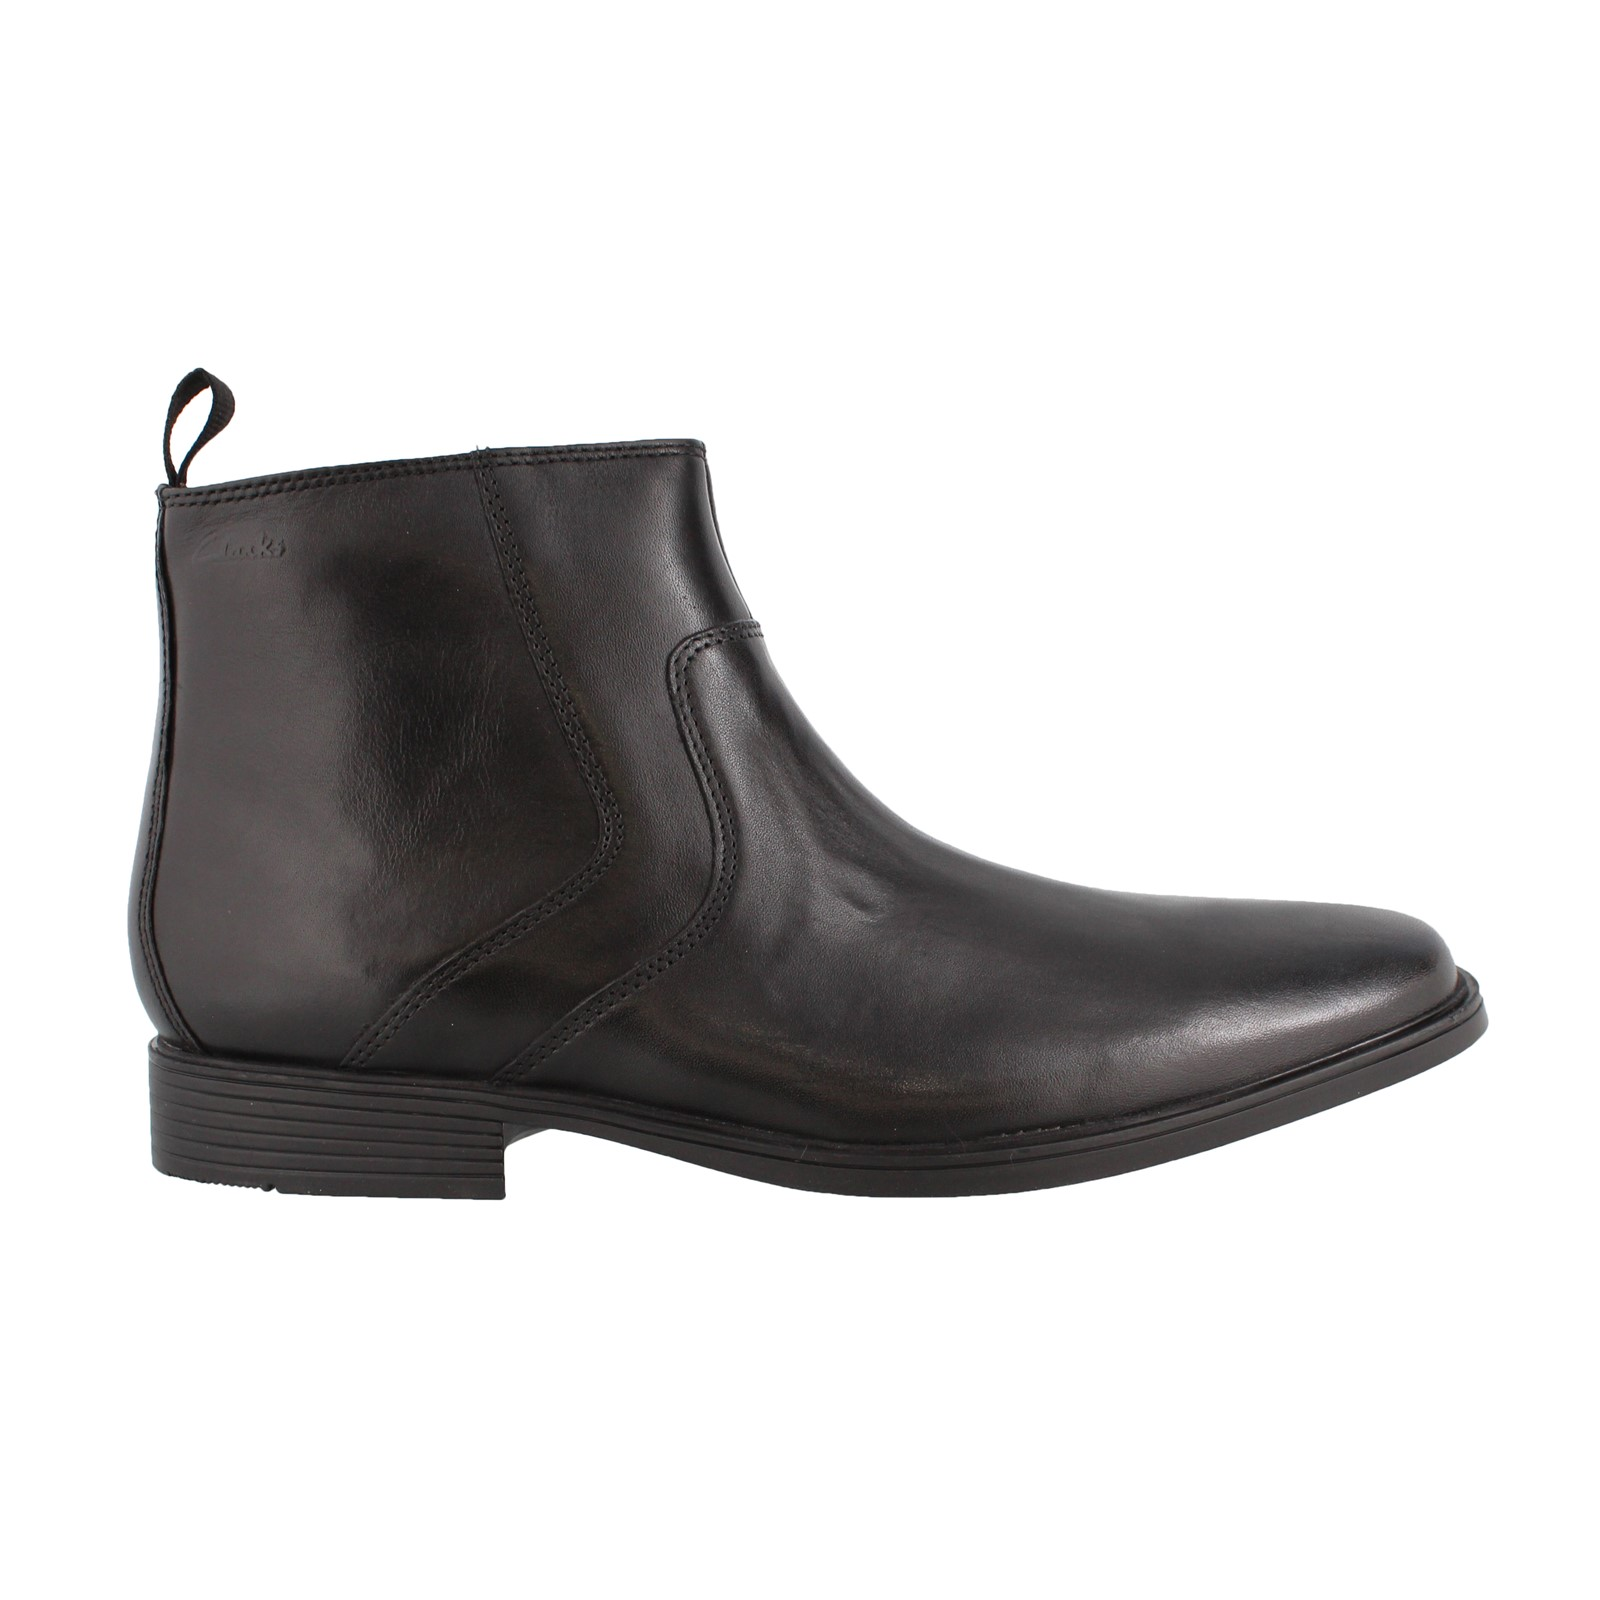 Men's Clarks, Tilden Zip Ankle Boot